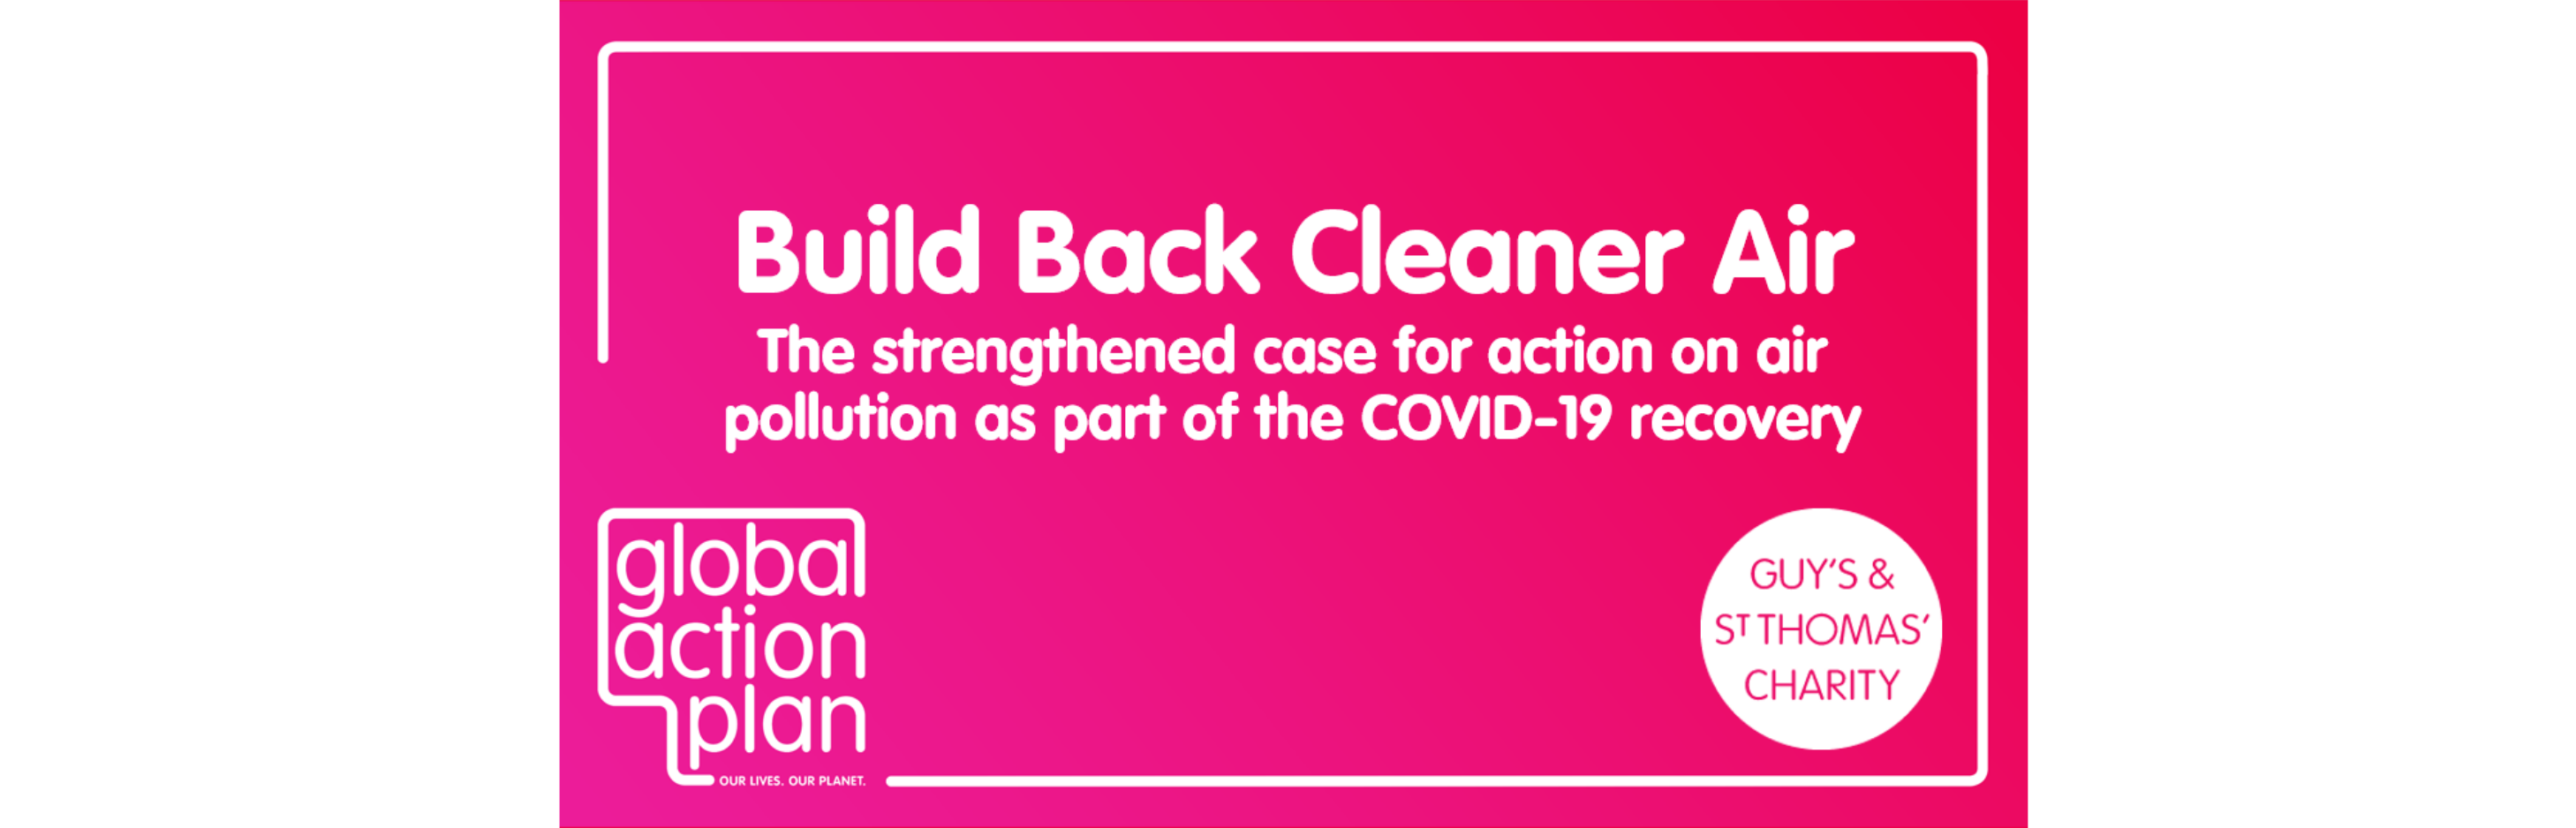 Build Back Cleaner Air: The strengthened case for action on air pollution as part of the COVID-19 recovery